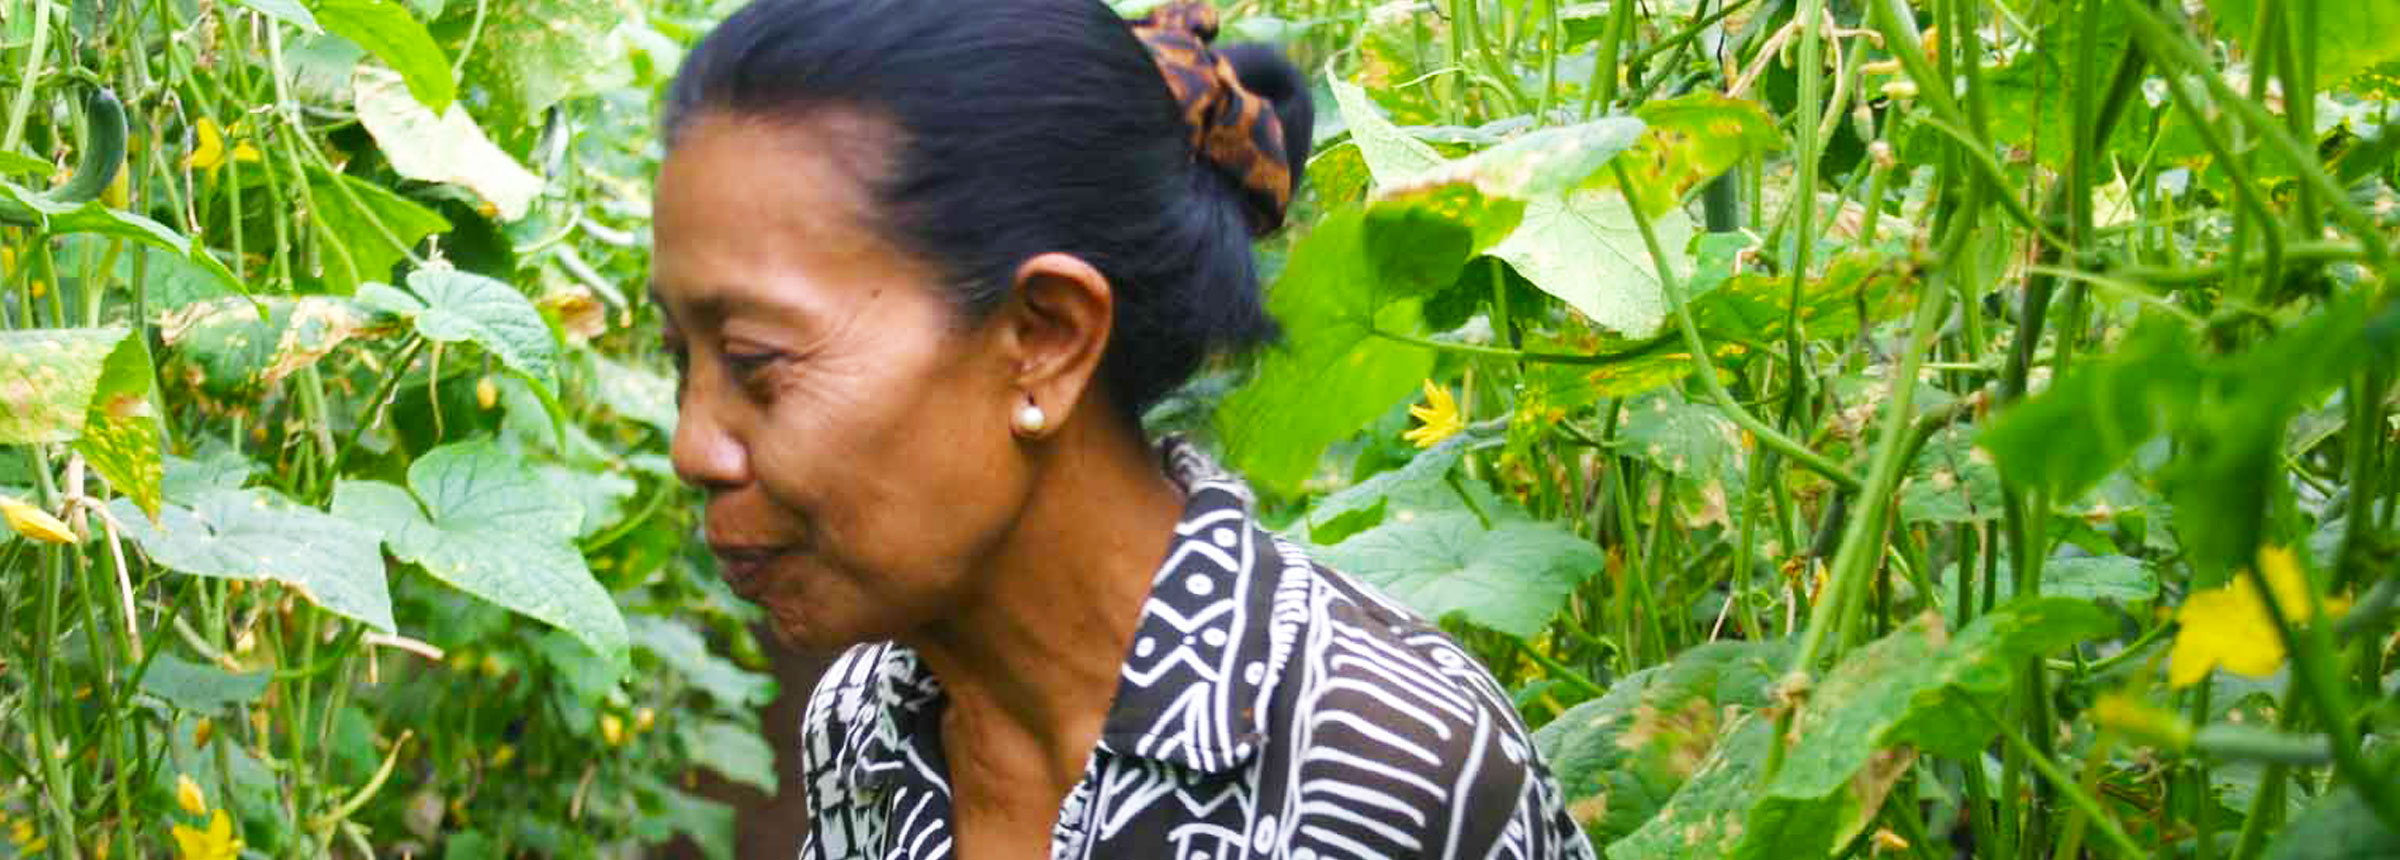 Indonesian woman farmer